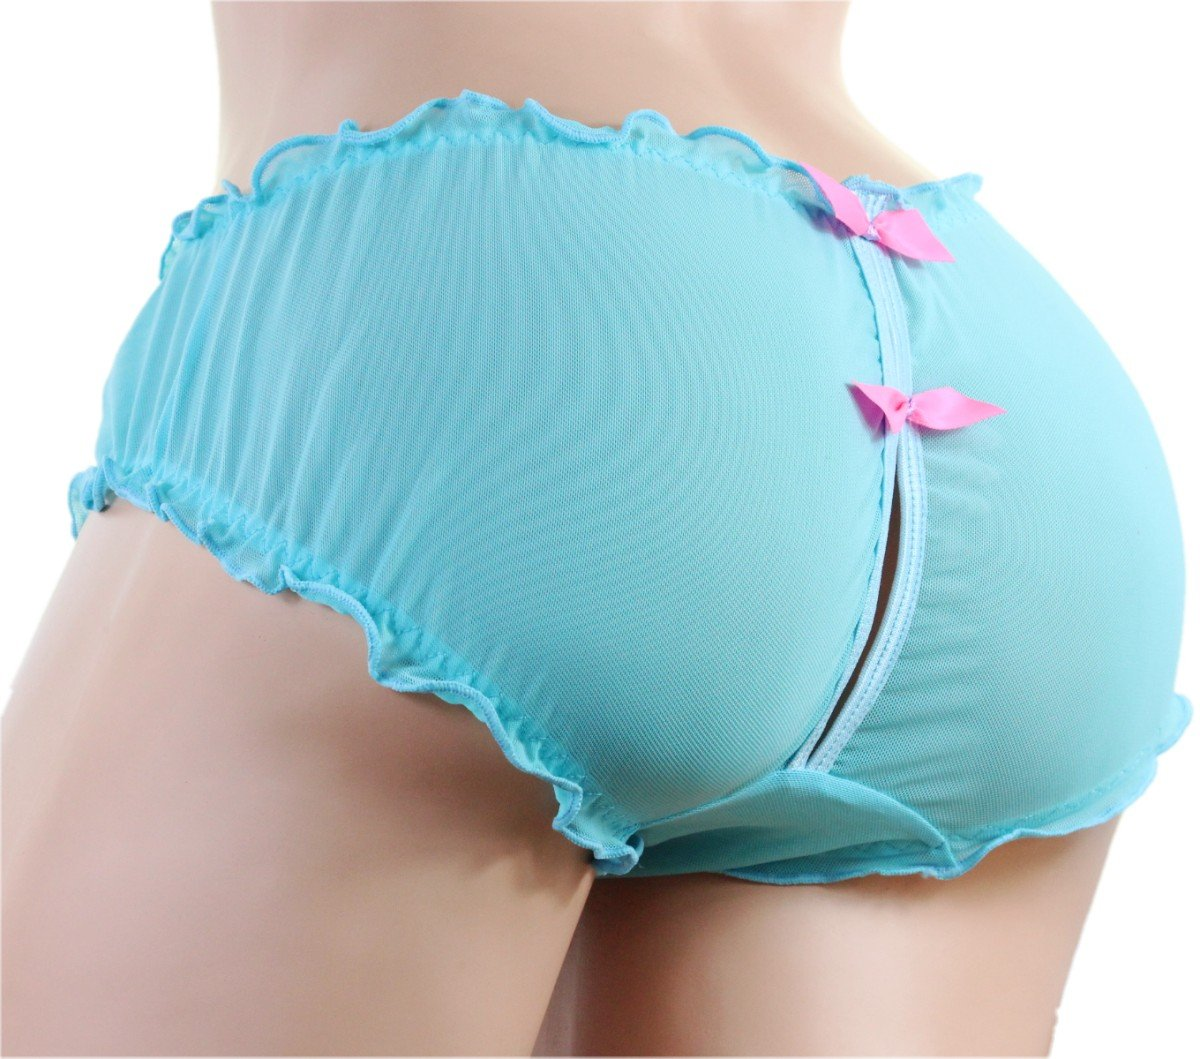 SISSY pouch panties size 36''-42'' men's girlie bikini men's briefs underwear sexy for men (Blue XL)